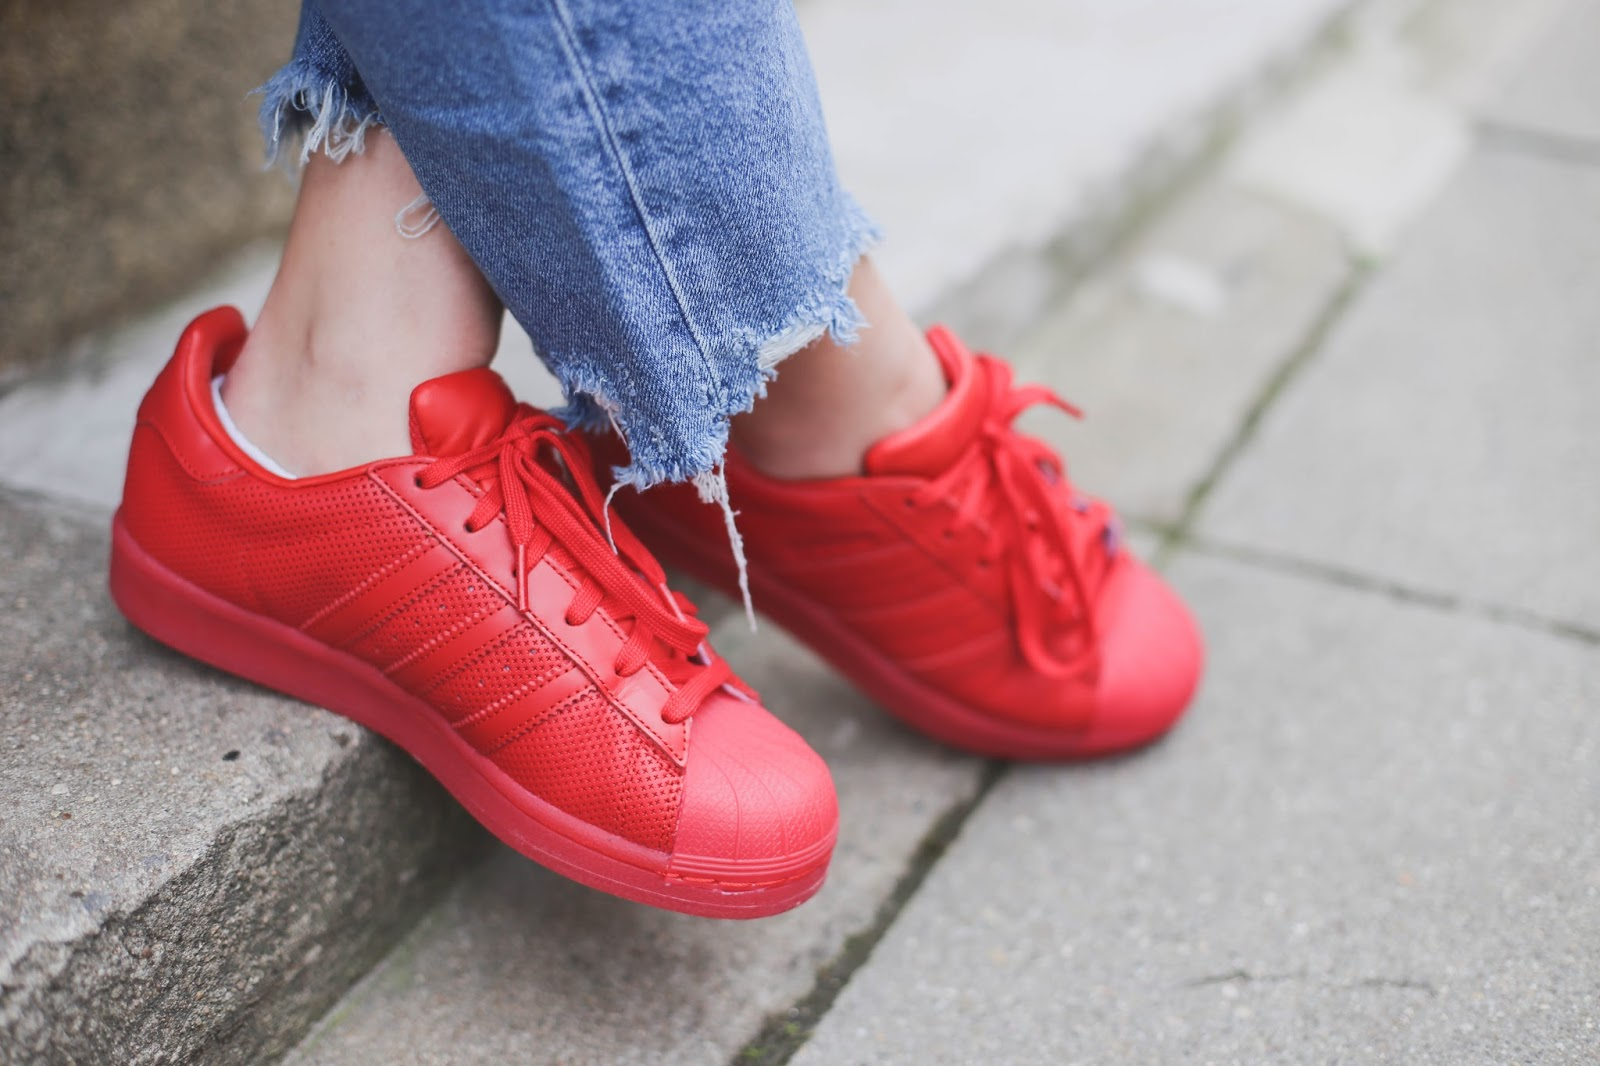 the red adidas superstar